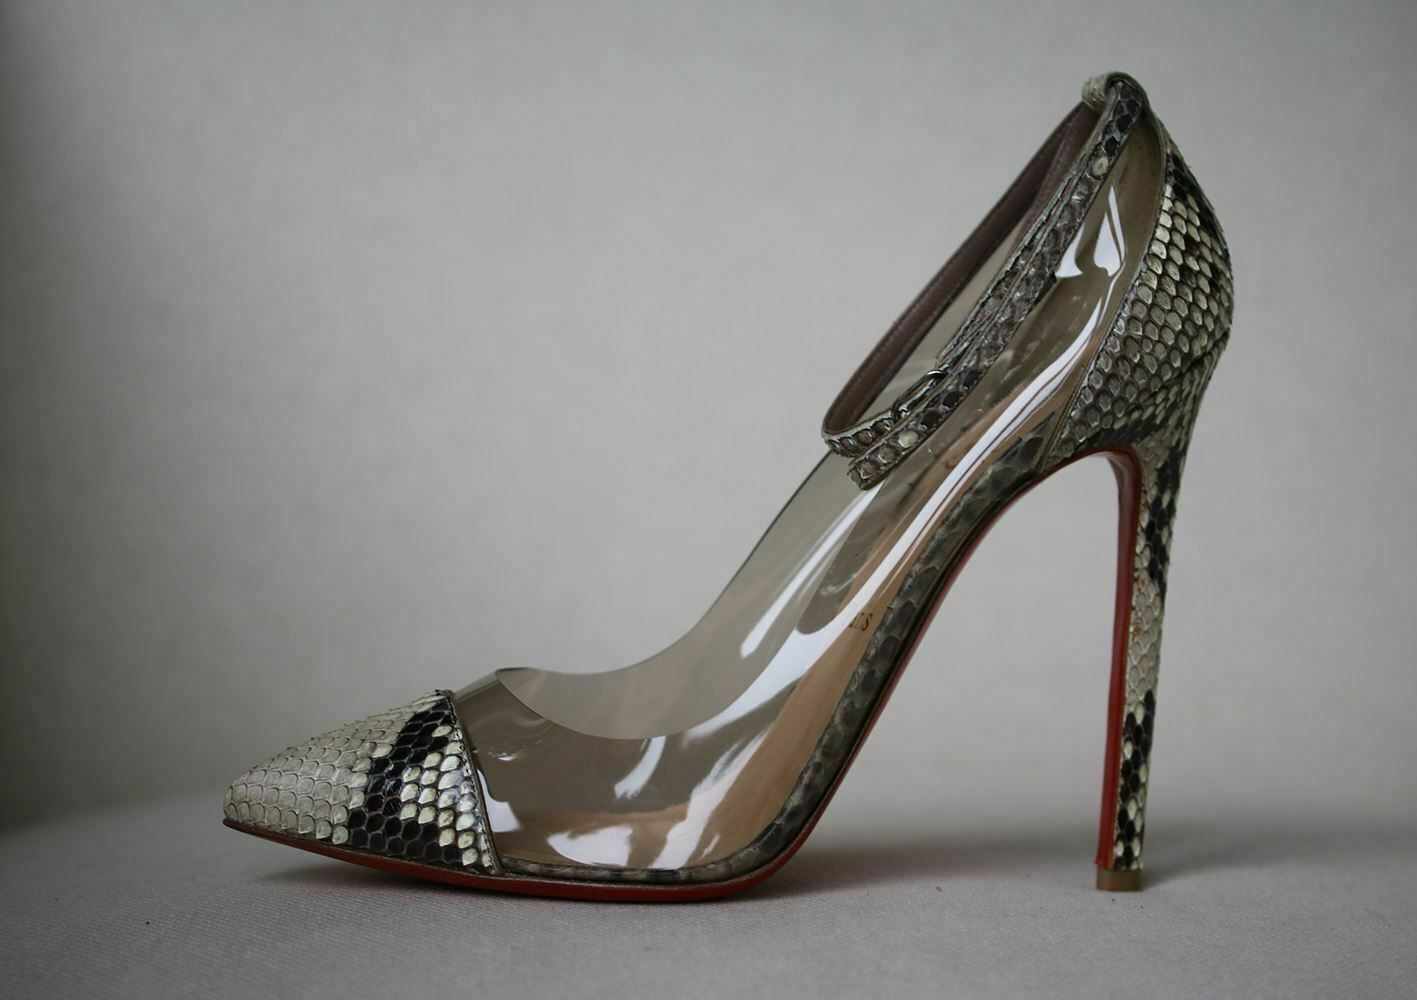 CHRISTIAN LOUBOUTIN UN BOUT 120 SNAKESKIN PUMPS EU 37.5 UK 4.5 US 7.5